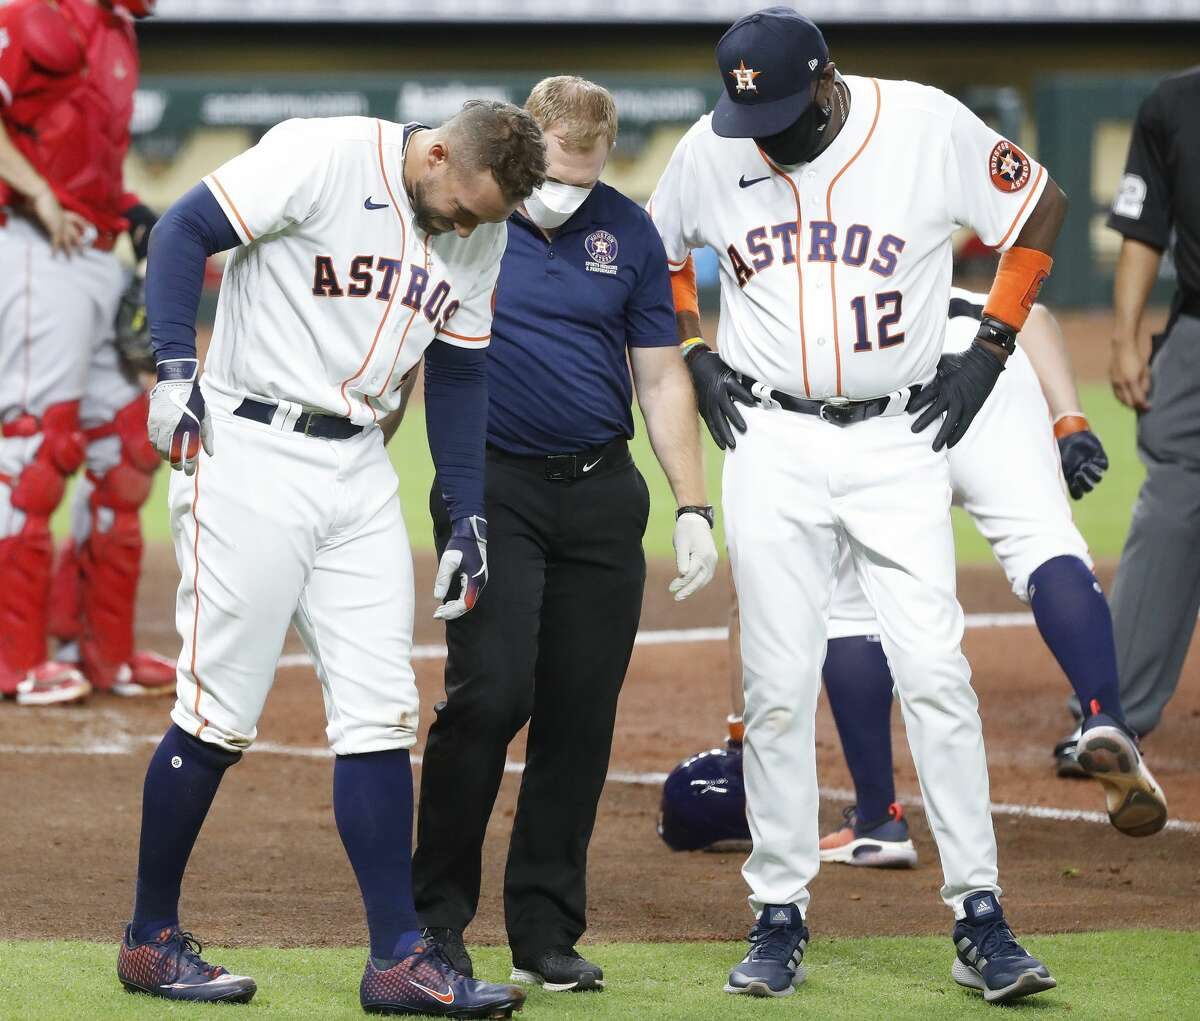 Houston Astros George Springer (4) reacts after getting hit by a pitch on his hand during the sixth inning of an MLB baseball game at Minute Maid Park, Monday, August 24, 2020, in Houston.